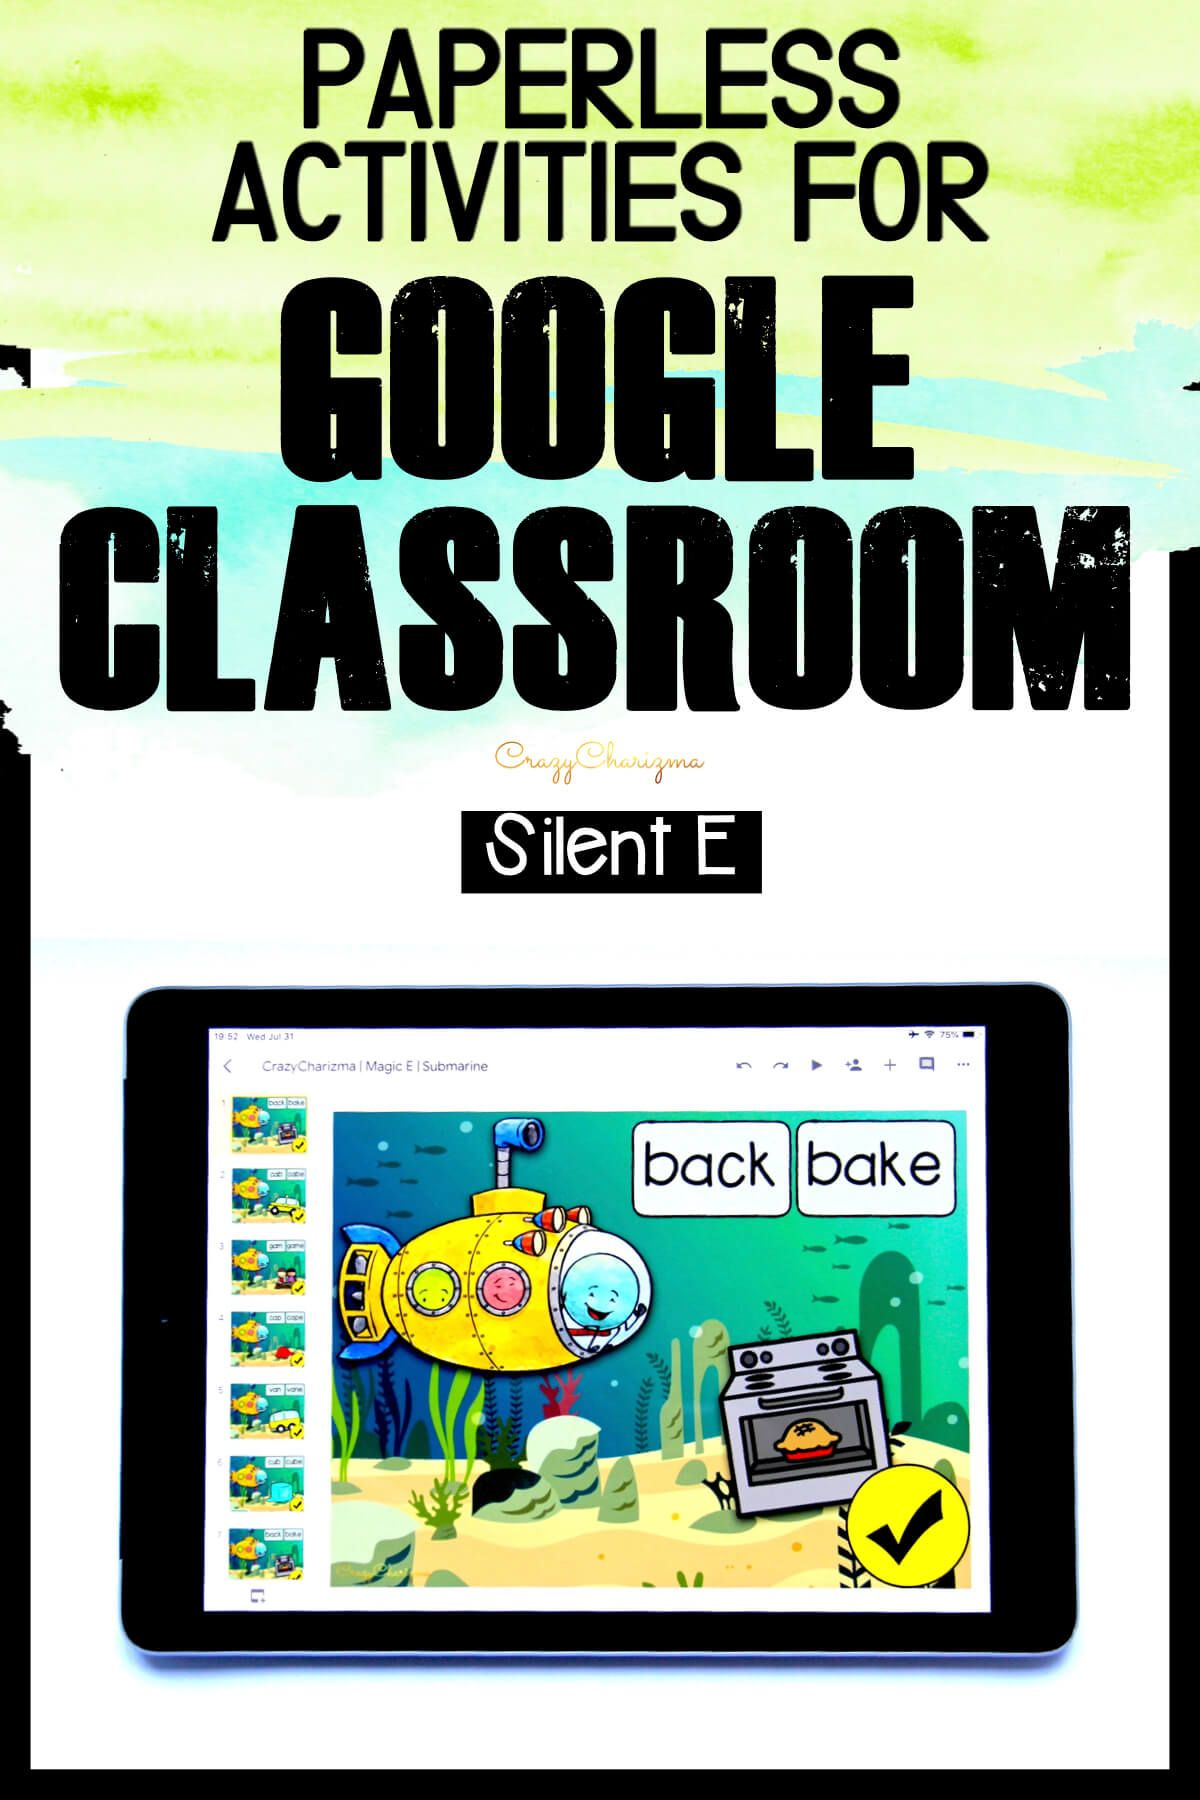 Need cool games to practice magic E? No matter what they call it (silent e or sneaky e), your kids will enjoy these paperless activities. The bundle is perfect for iPads and Chromebooks. Have fun with Google Classroom!